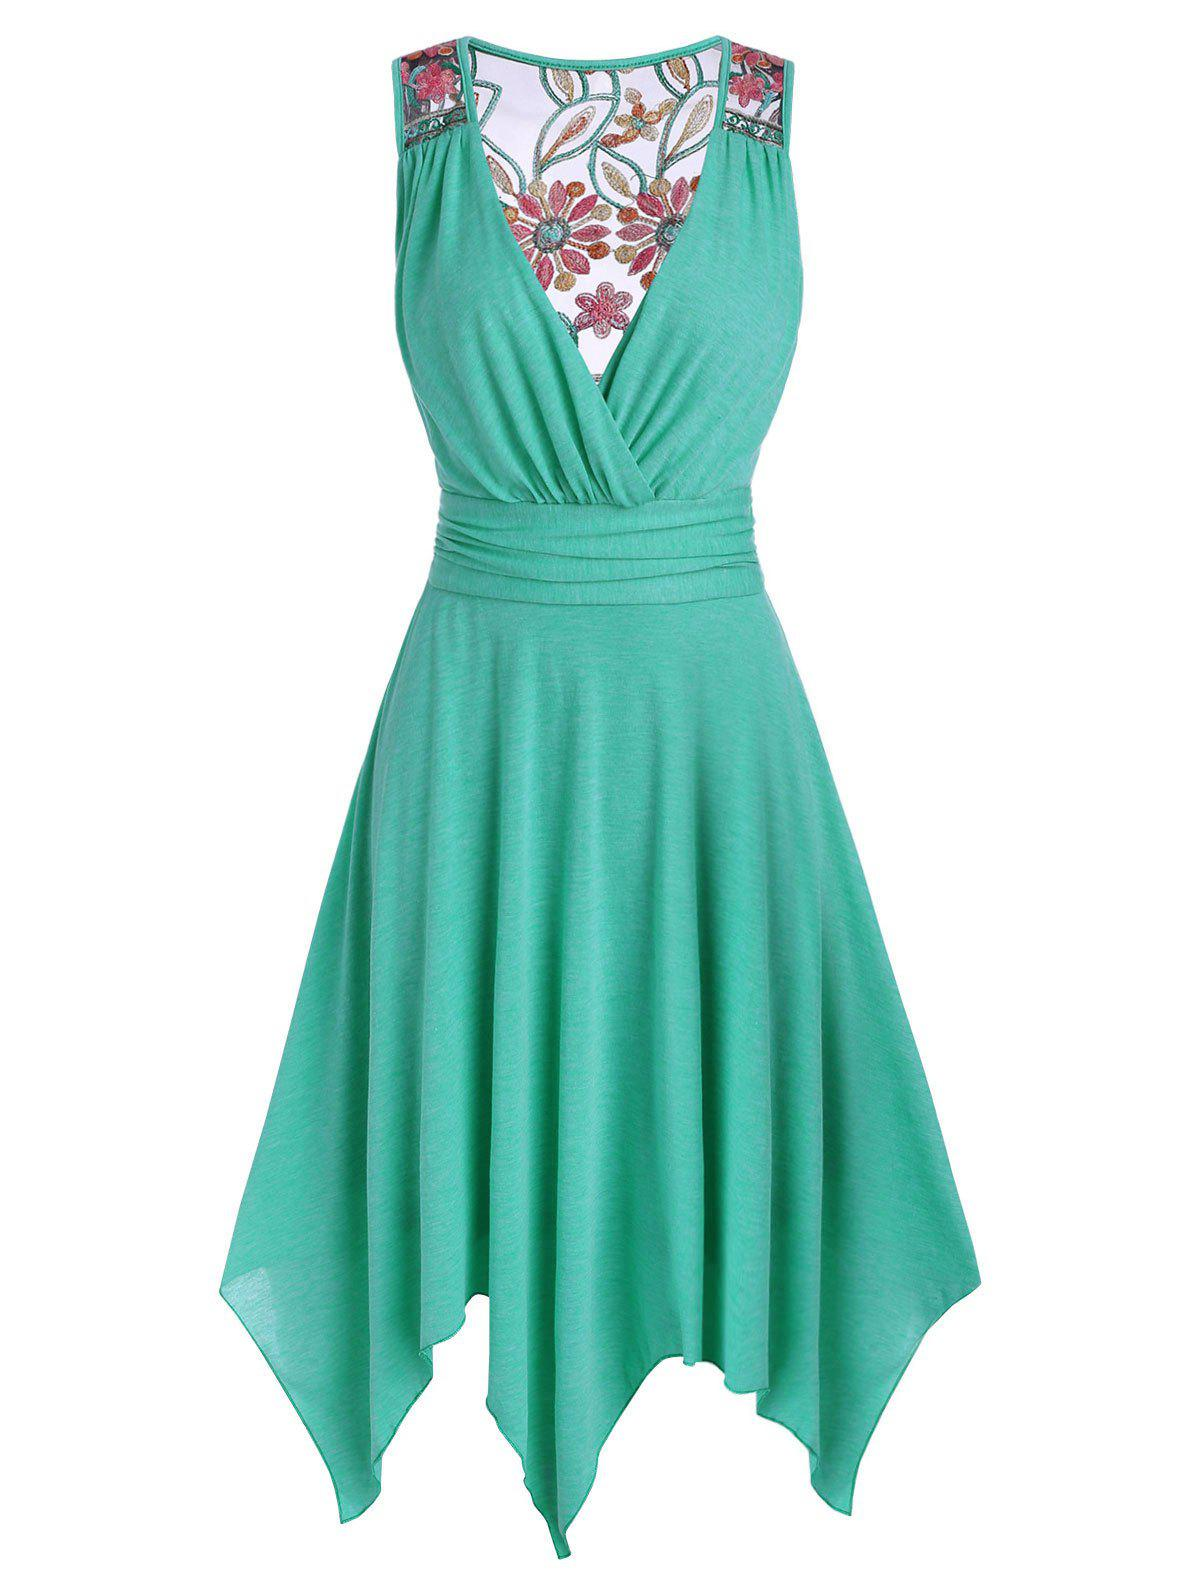 Affordable Flower Embroidered Mesh Panel Handkerchief Dress